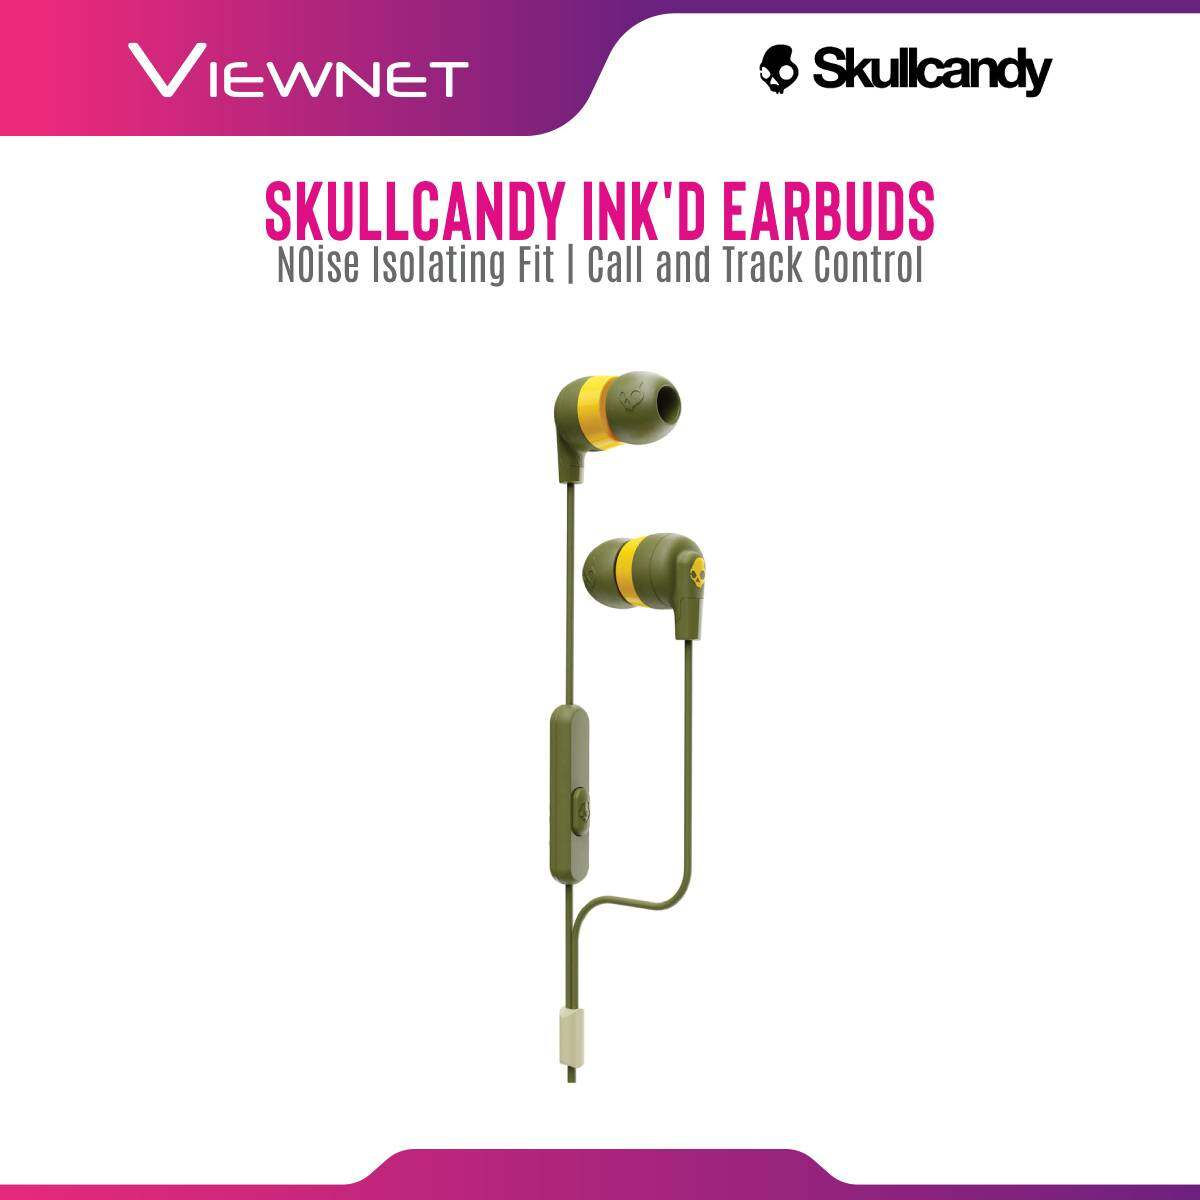 Skullcandy Ink'd+ Earbuds with Microphone, Noise Isolating Fit, Call and Track Control